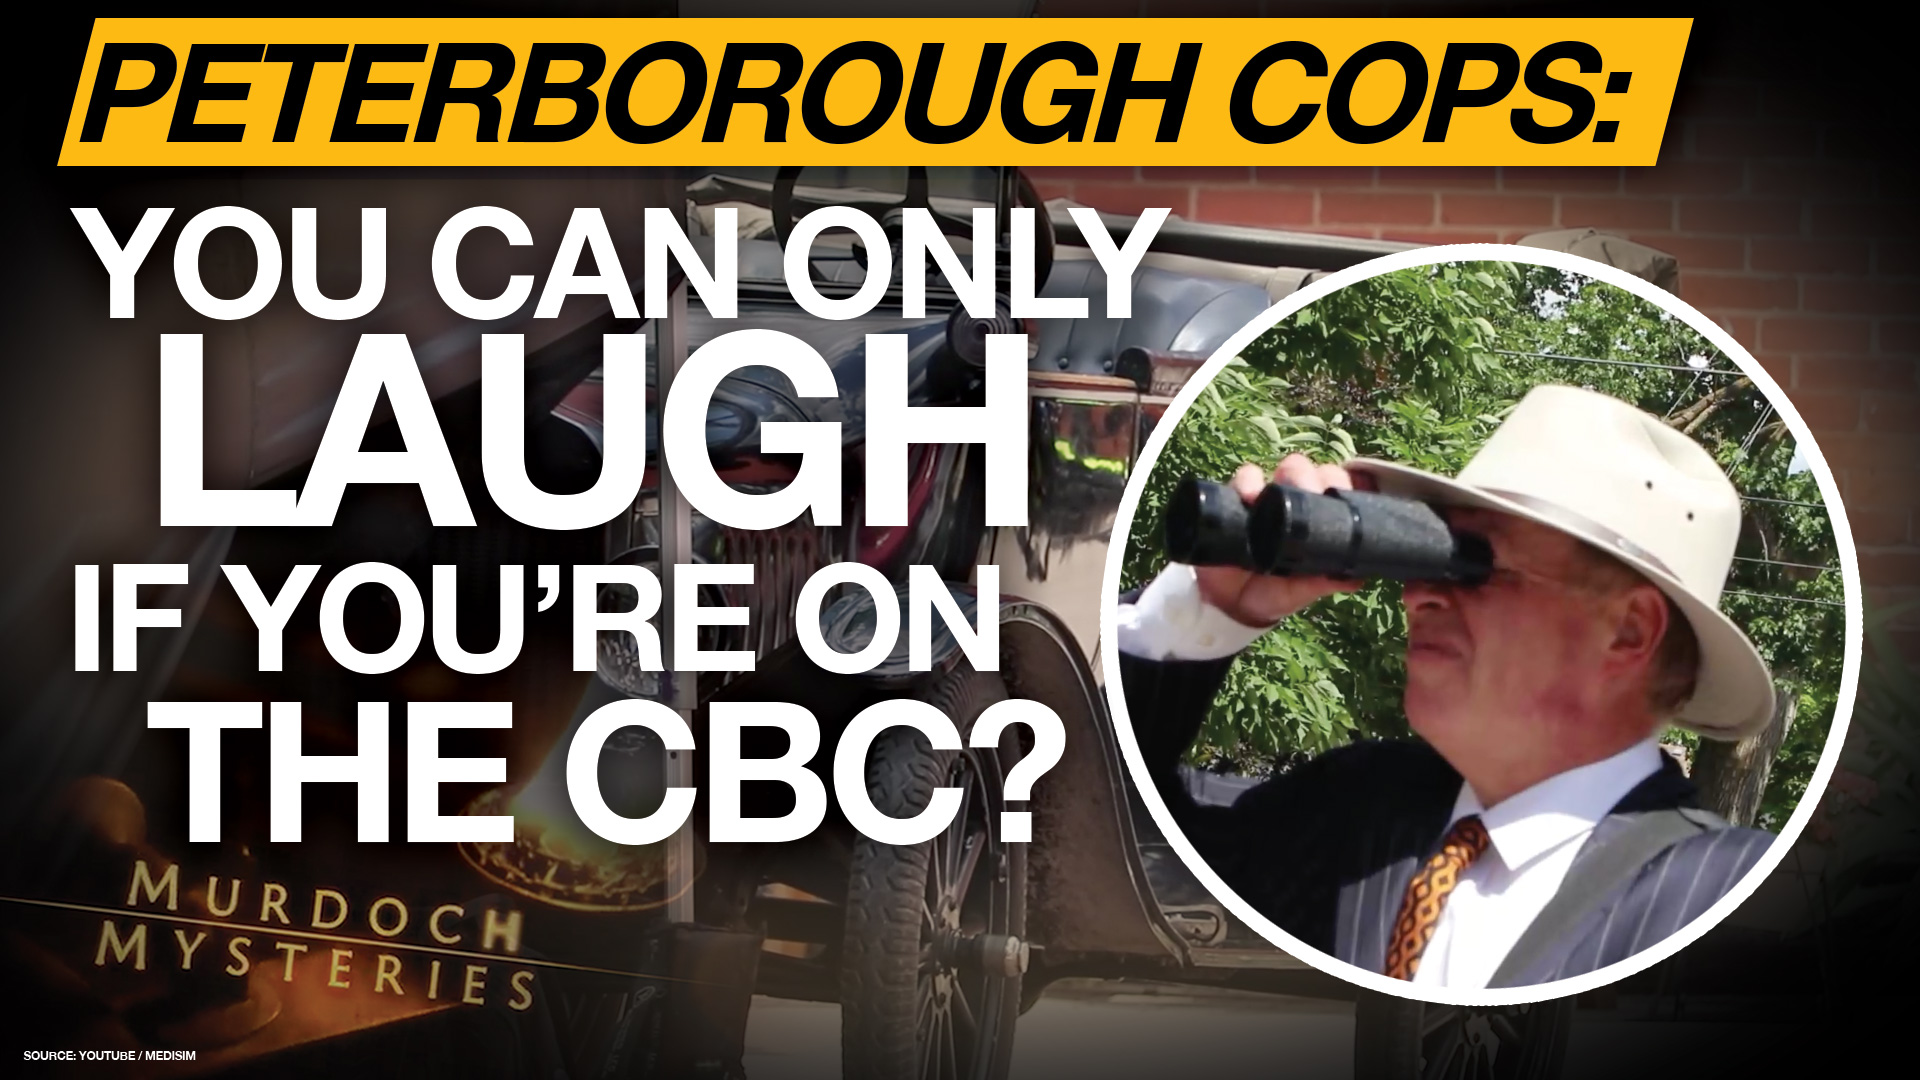 Peterborough police won't ticket cast & crew of CBC show for handshakes, laughter